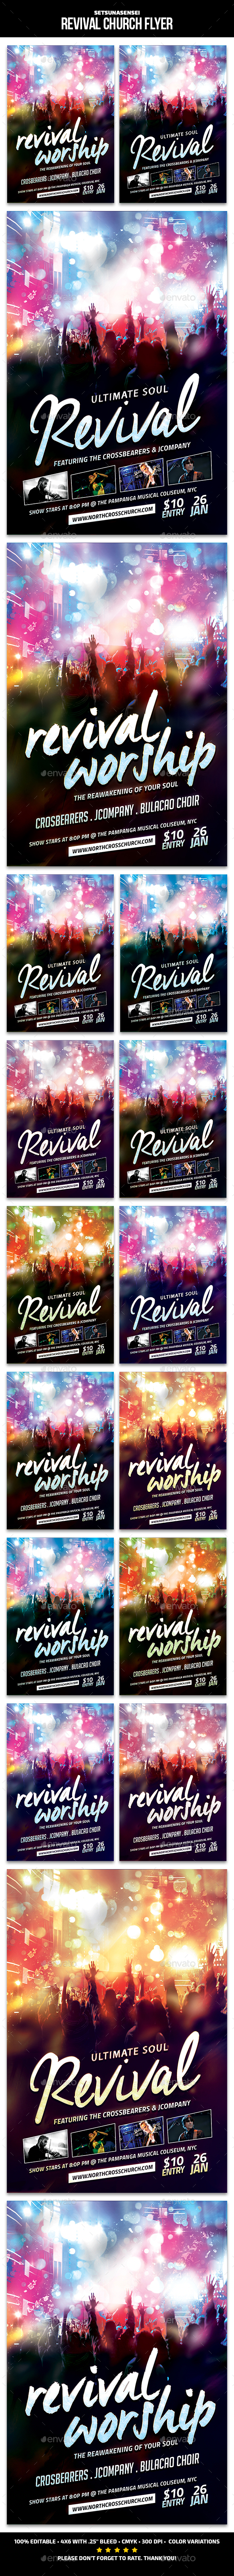 Revival Church Flyer - Church Flyers